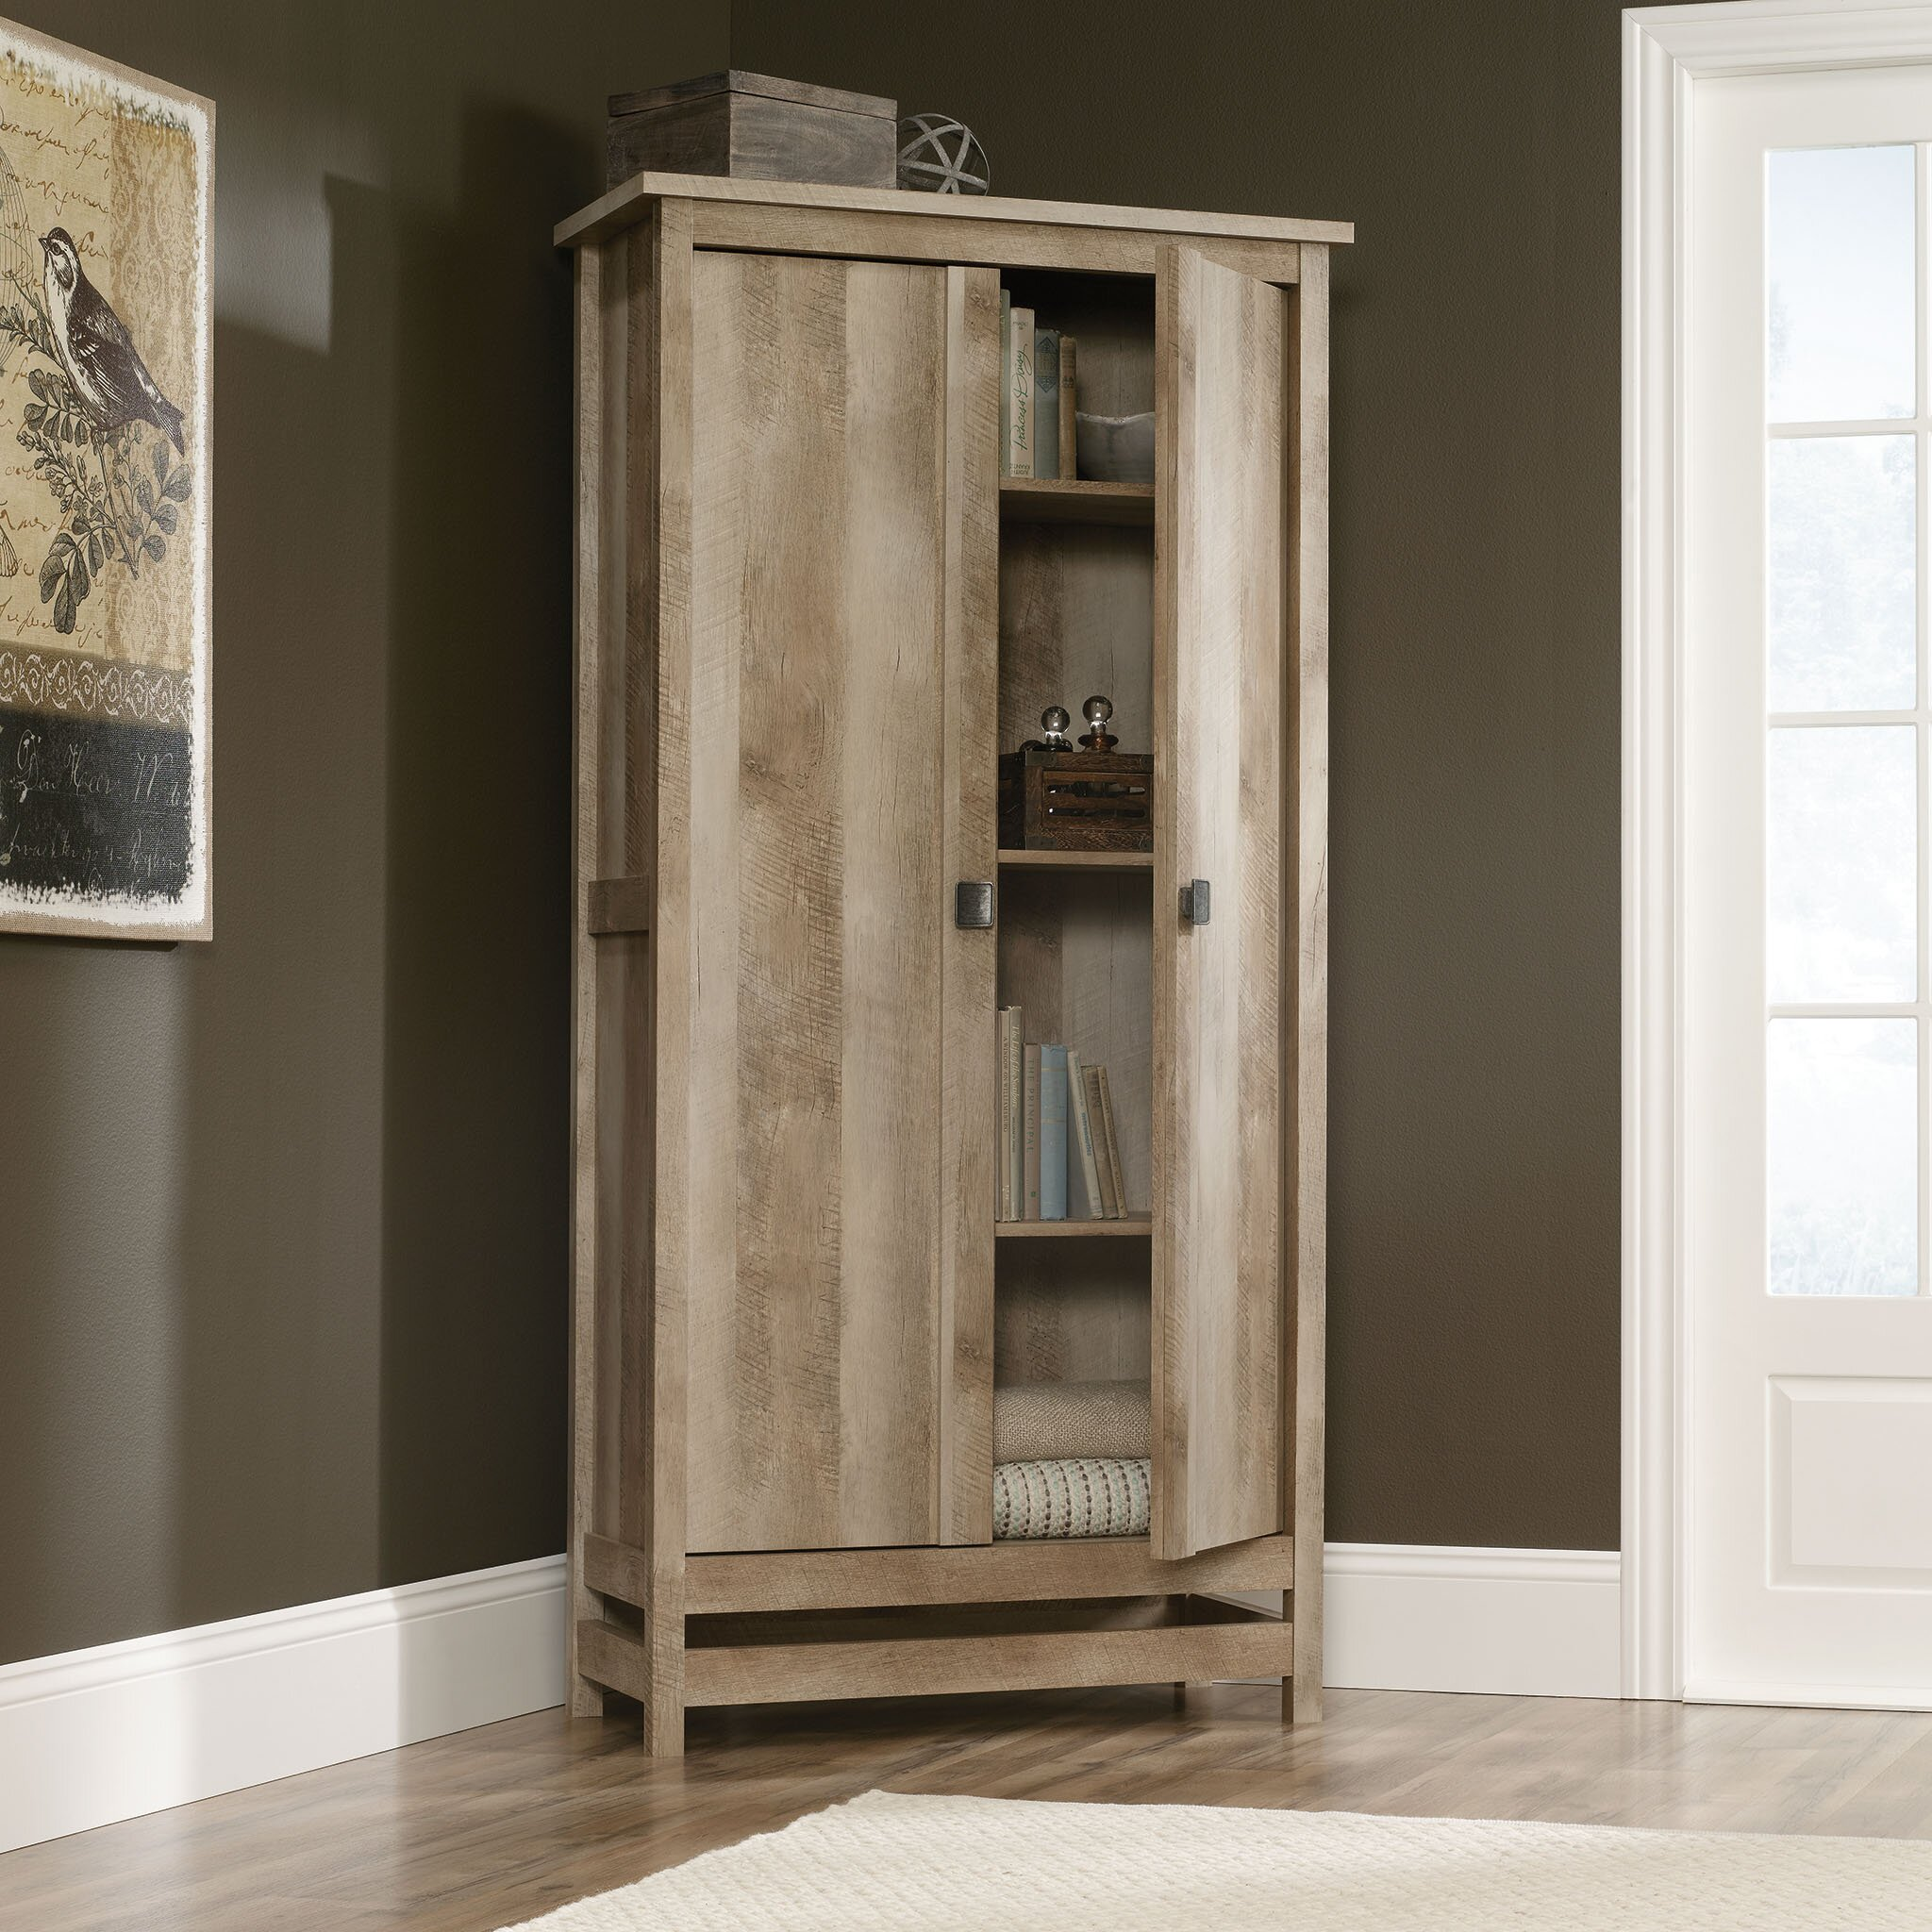 Pantry Cabinet: Sauder Pantry Cabinet with Storage Cabinet in ...